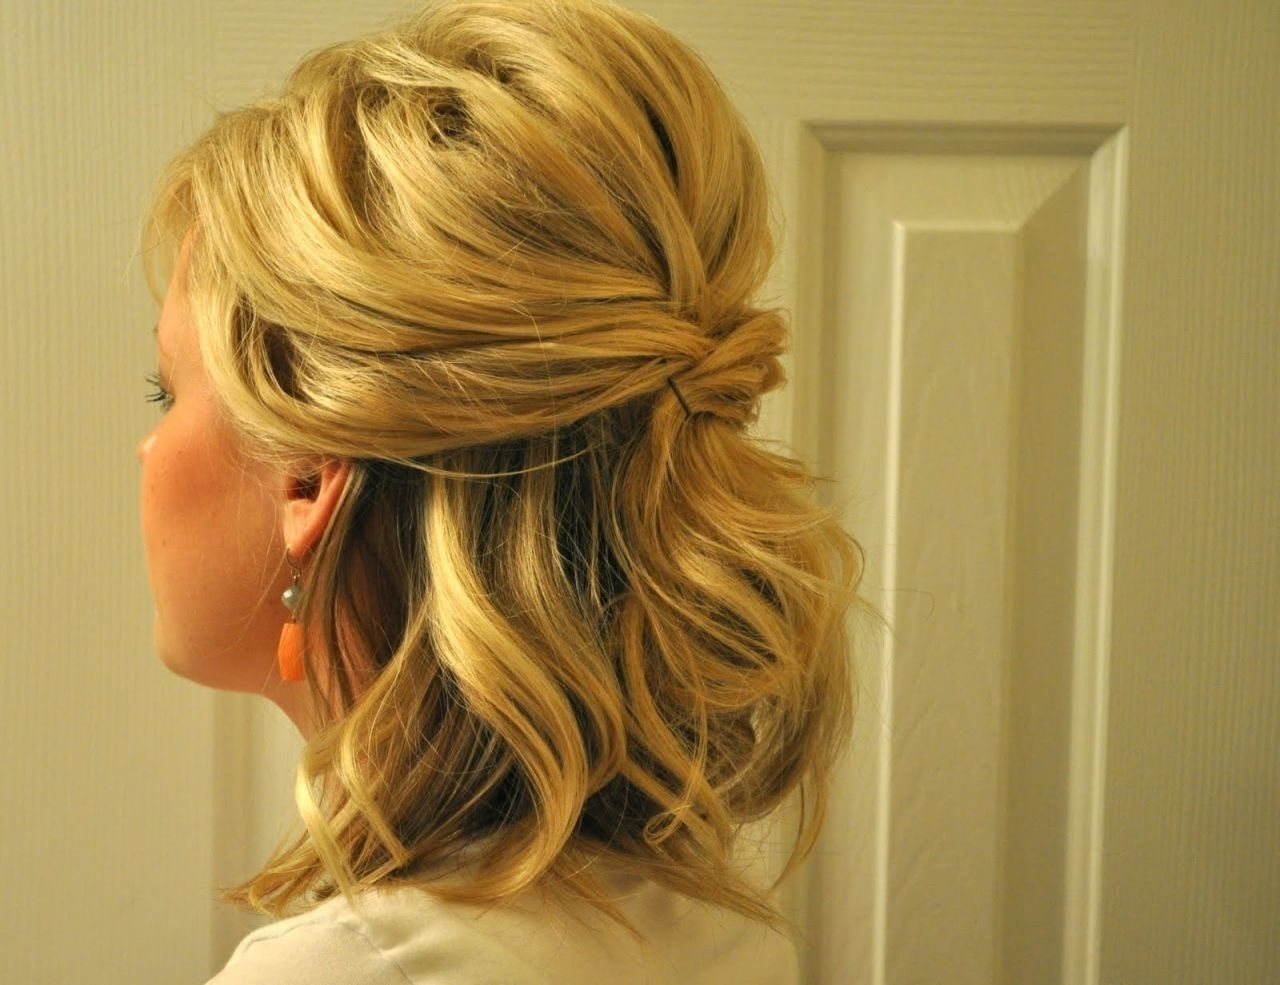 Updos For Medium Hair Half Up Half Down Half Up Half Down Wedding With Most Up To Date Wedding Hairstyles For Bridesmaids With Medium Length Hair (Gallery 9 of 15)